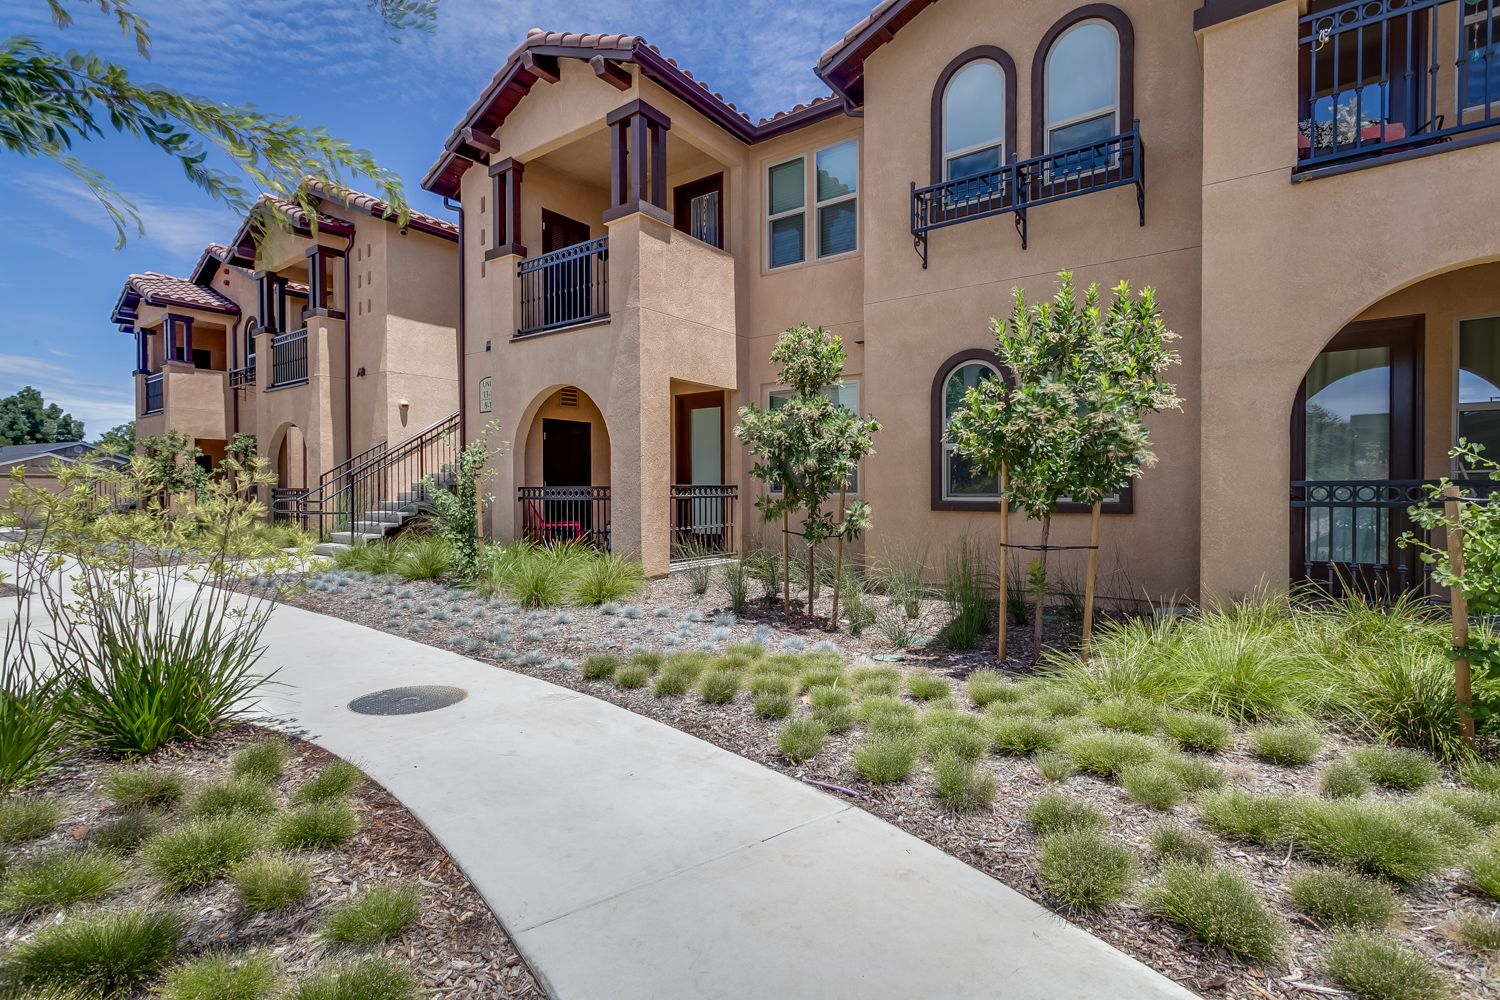 Additional photo for property listing at Ivy Terrace - Barcelona 140 Ivy Avenue Patterson, California 95363 United States